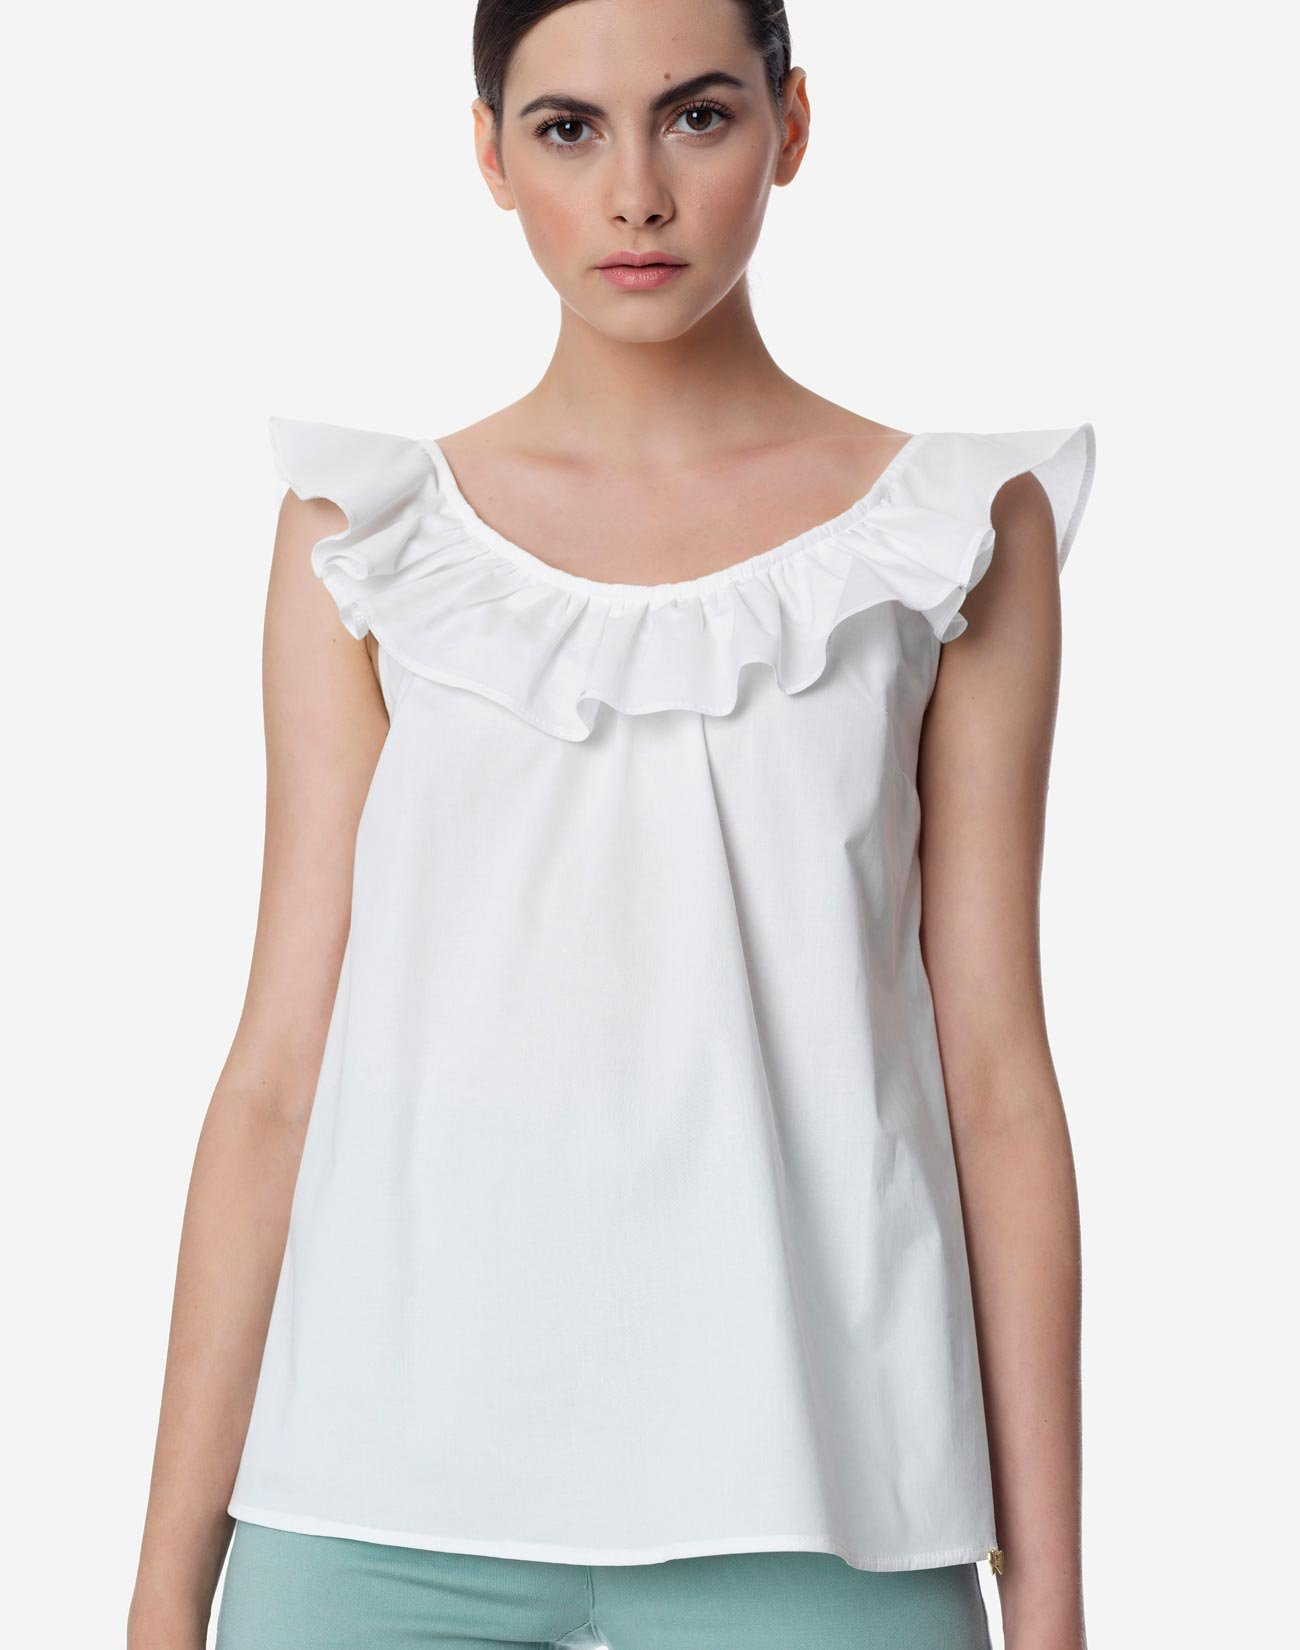 Ruflled top with bow